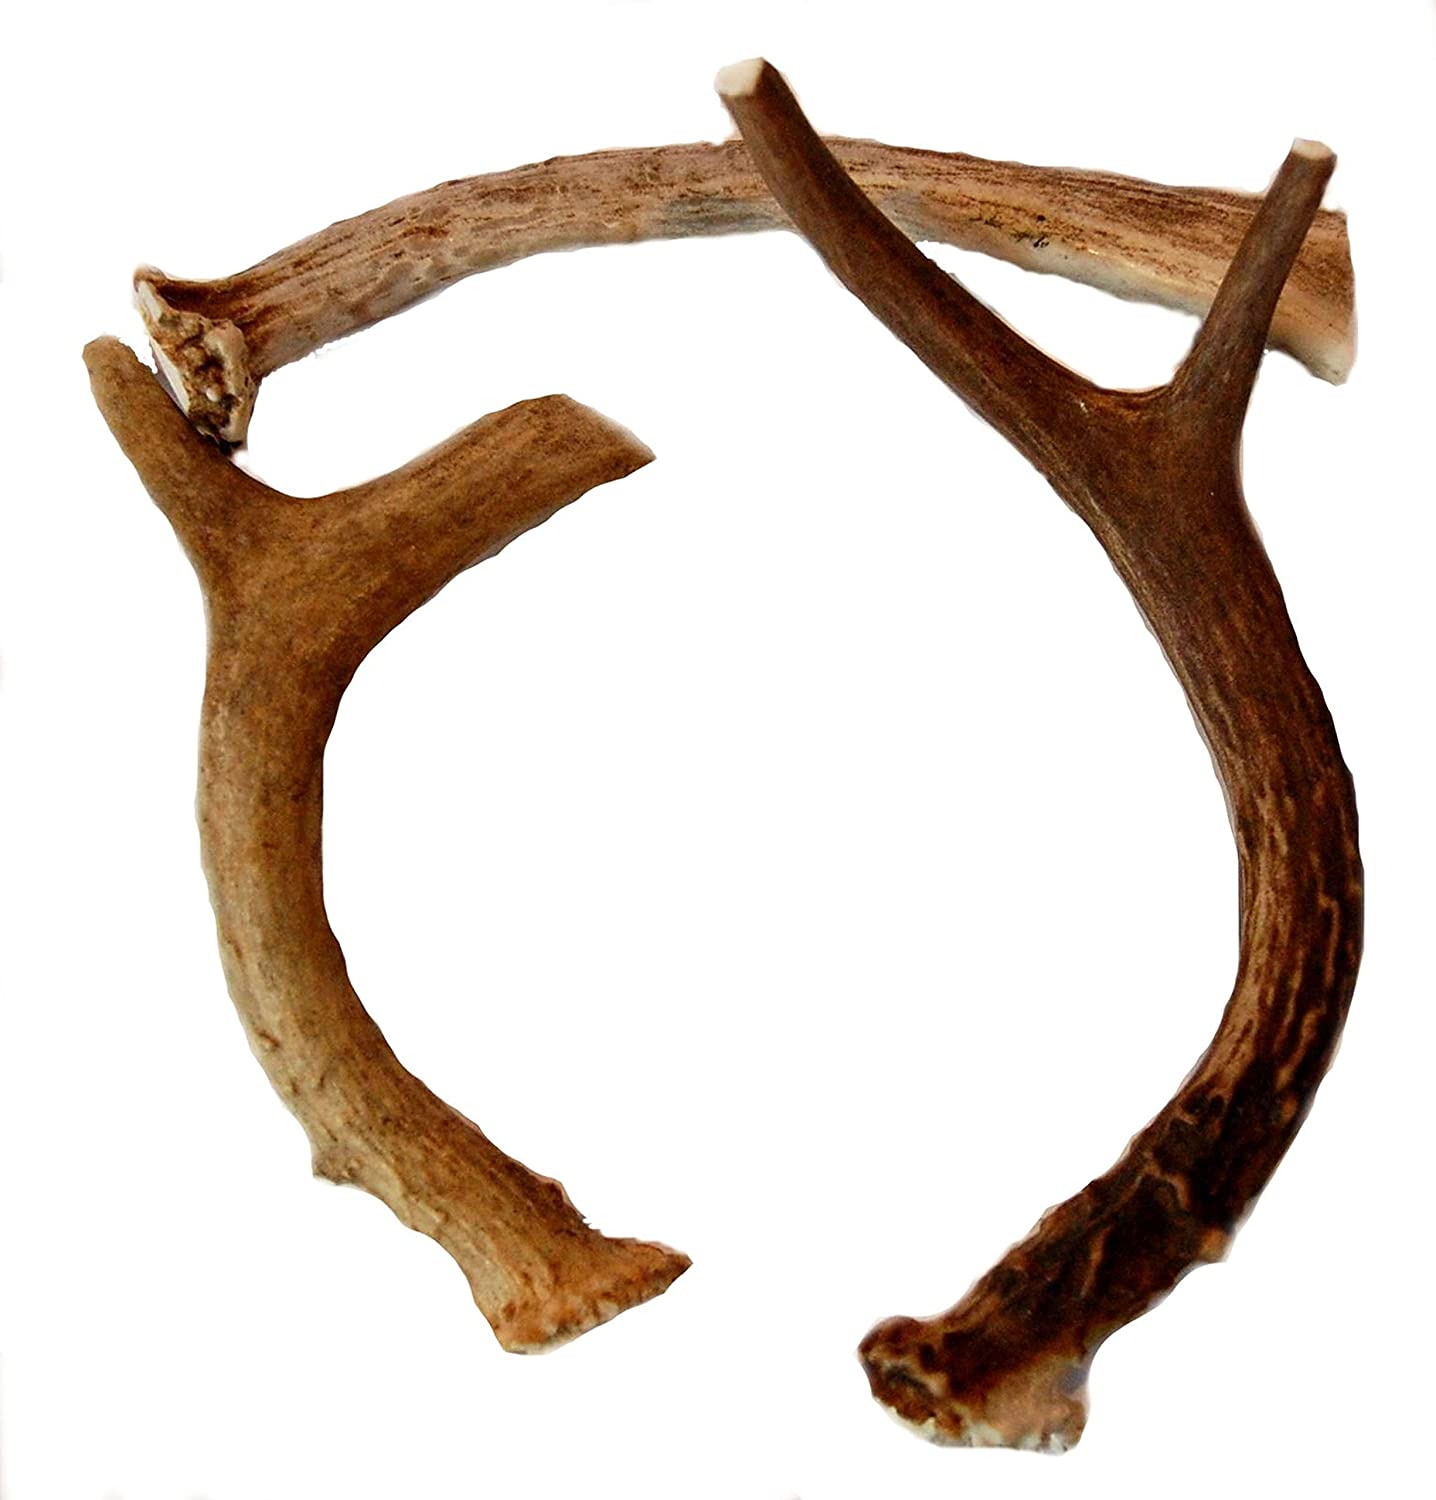 Big Dog Antler Chews 3 Pack Medium Deer Antler Dog Chews  5 Inches to 10 Inches  for Small to Medium Size Dogs Brand